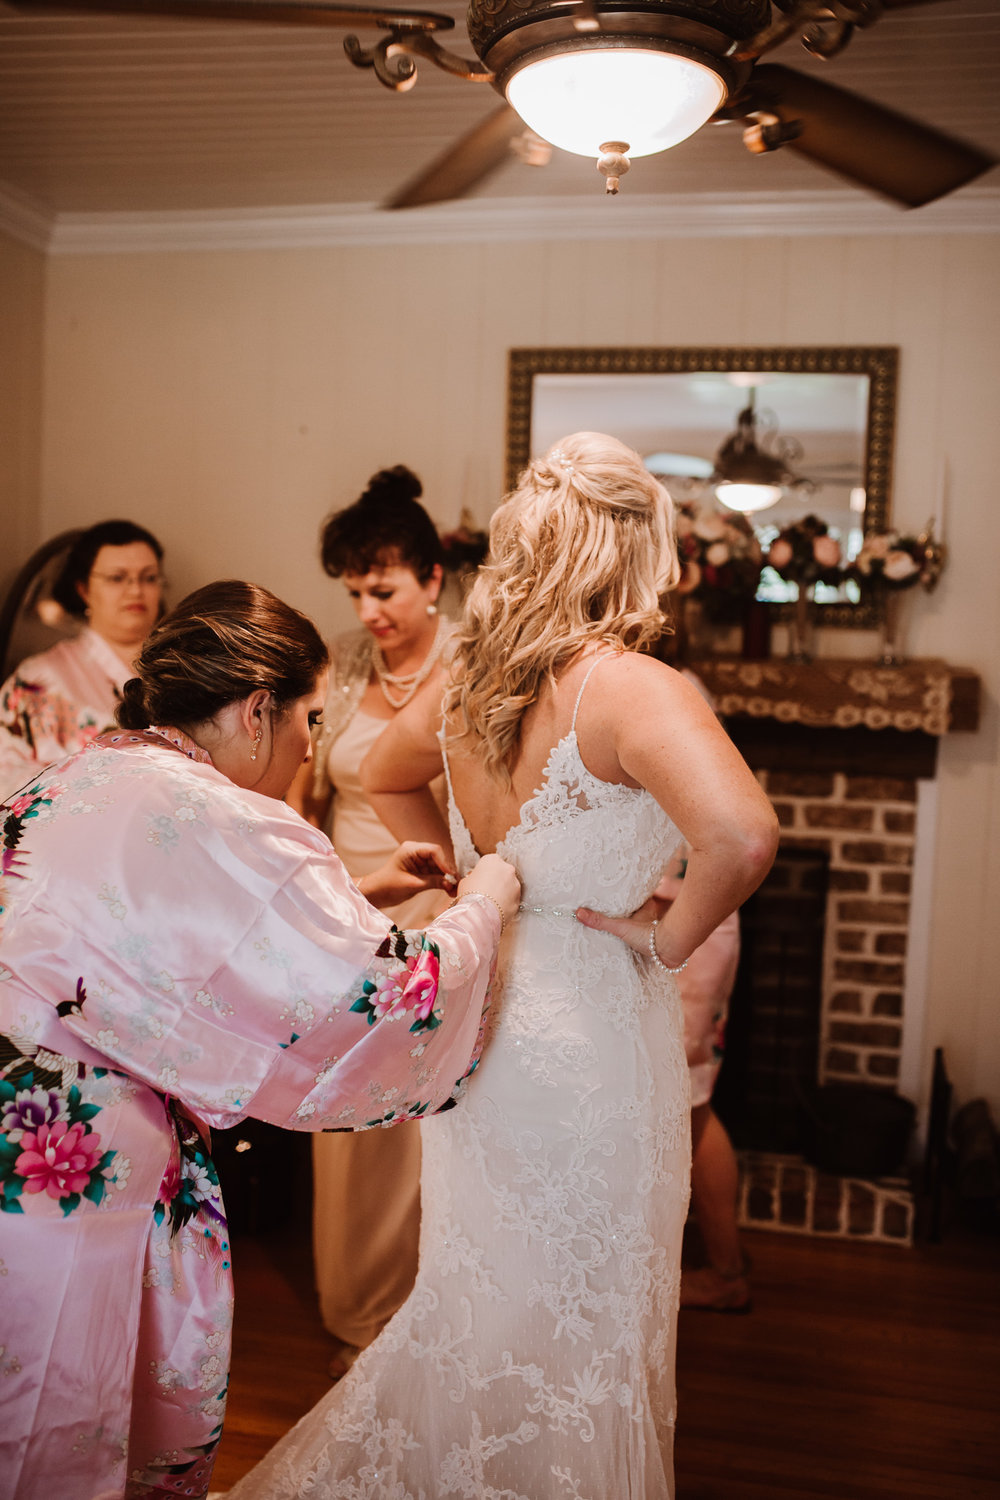 Getting Ready Details by Kayli LaFon Photography | Greensboro Winston-Salem, NC Wedding Photographer | The Hideaway at Crooked Creek, Whitsett